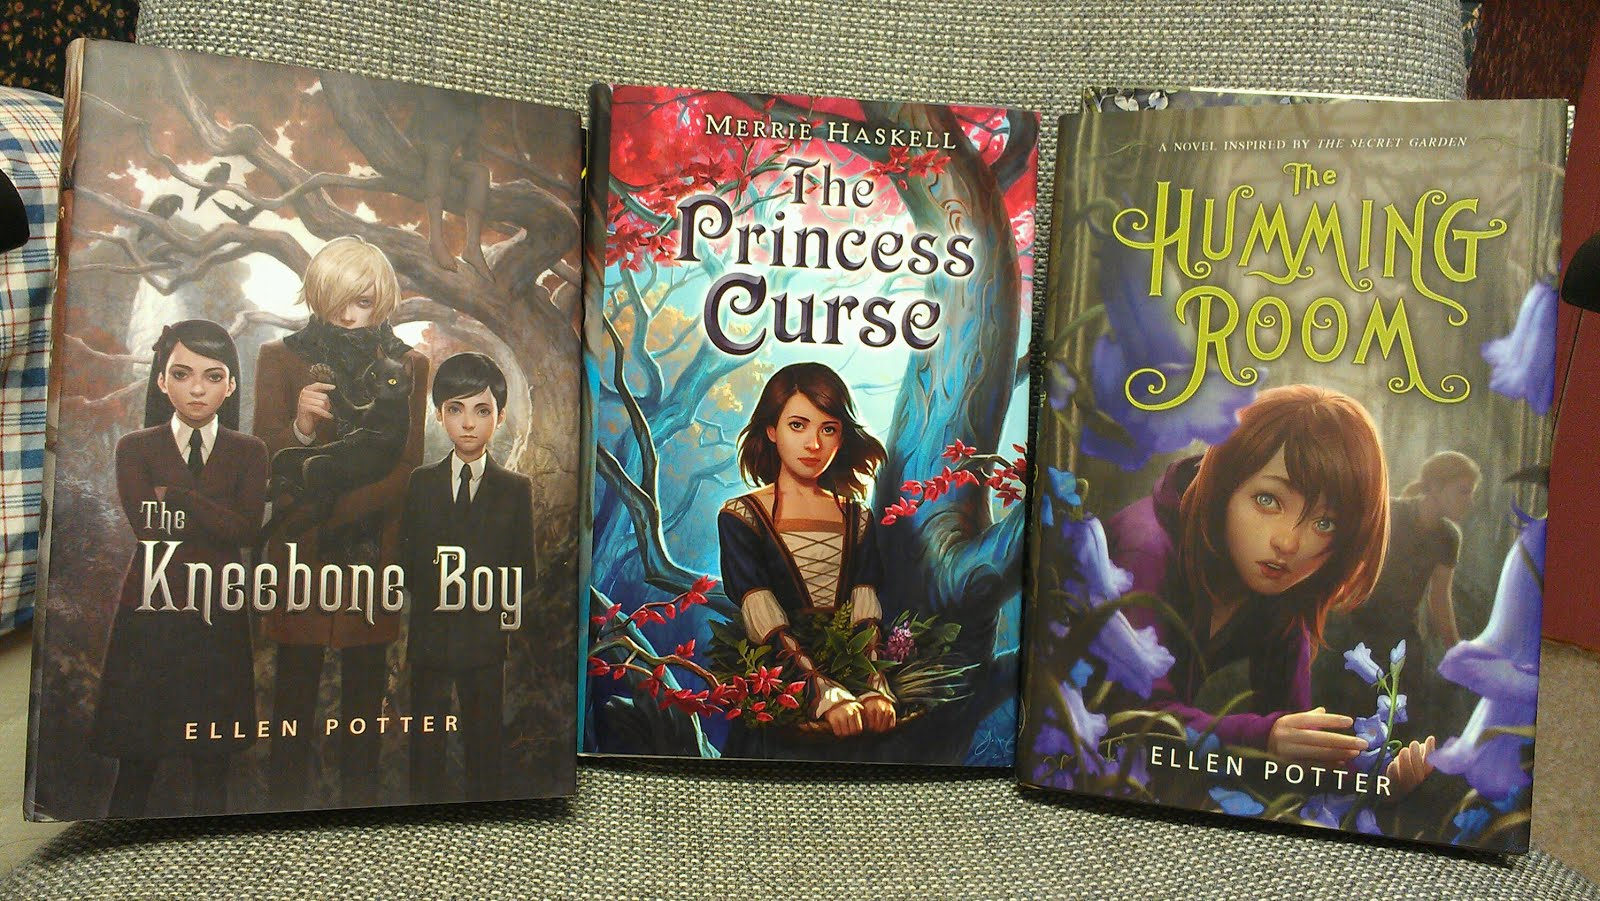 The Hunt By Andrew Fukuda Entwined By Heather Dixon Cold Kiss By Amy Garvey  (autographed) The Princess Curse By Marrie Haskell The Humming Room By  Ellen